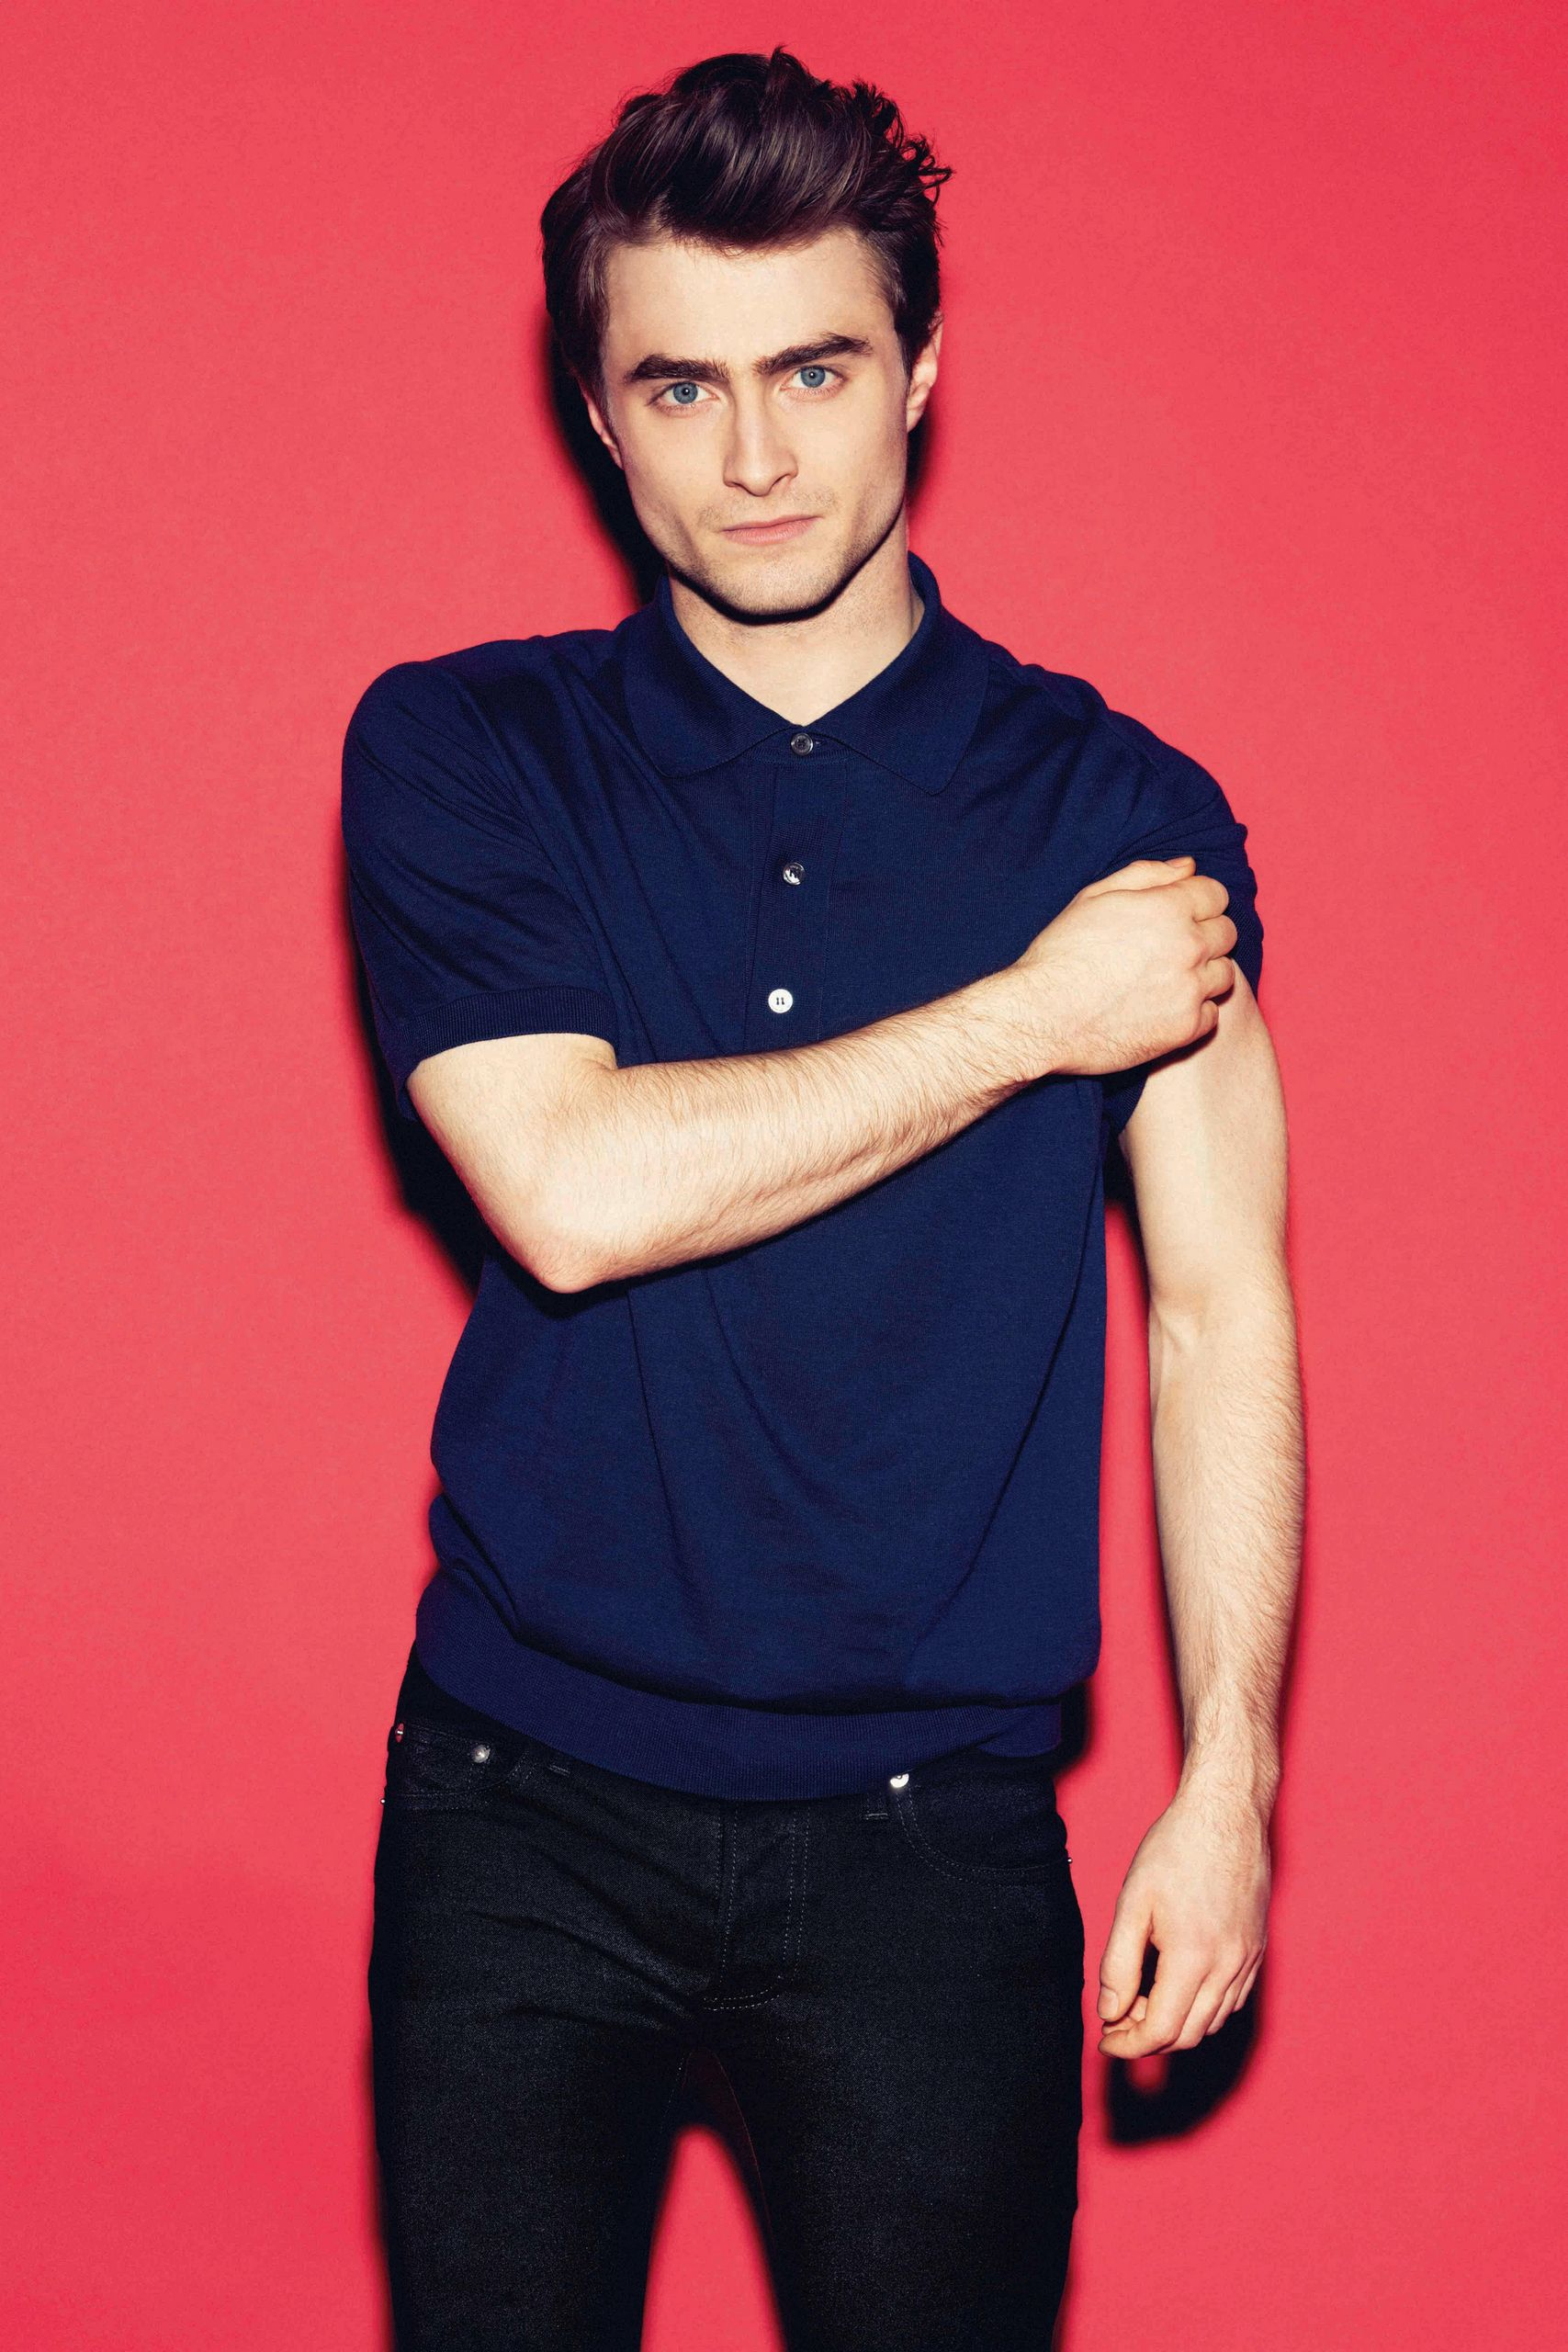 The famous Harry Potter actor Daniel Radcliffe